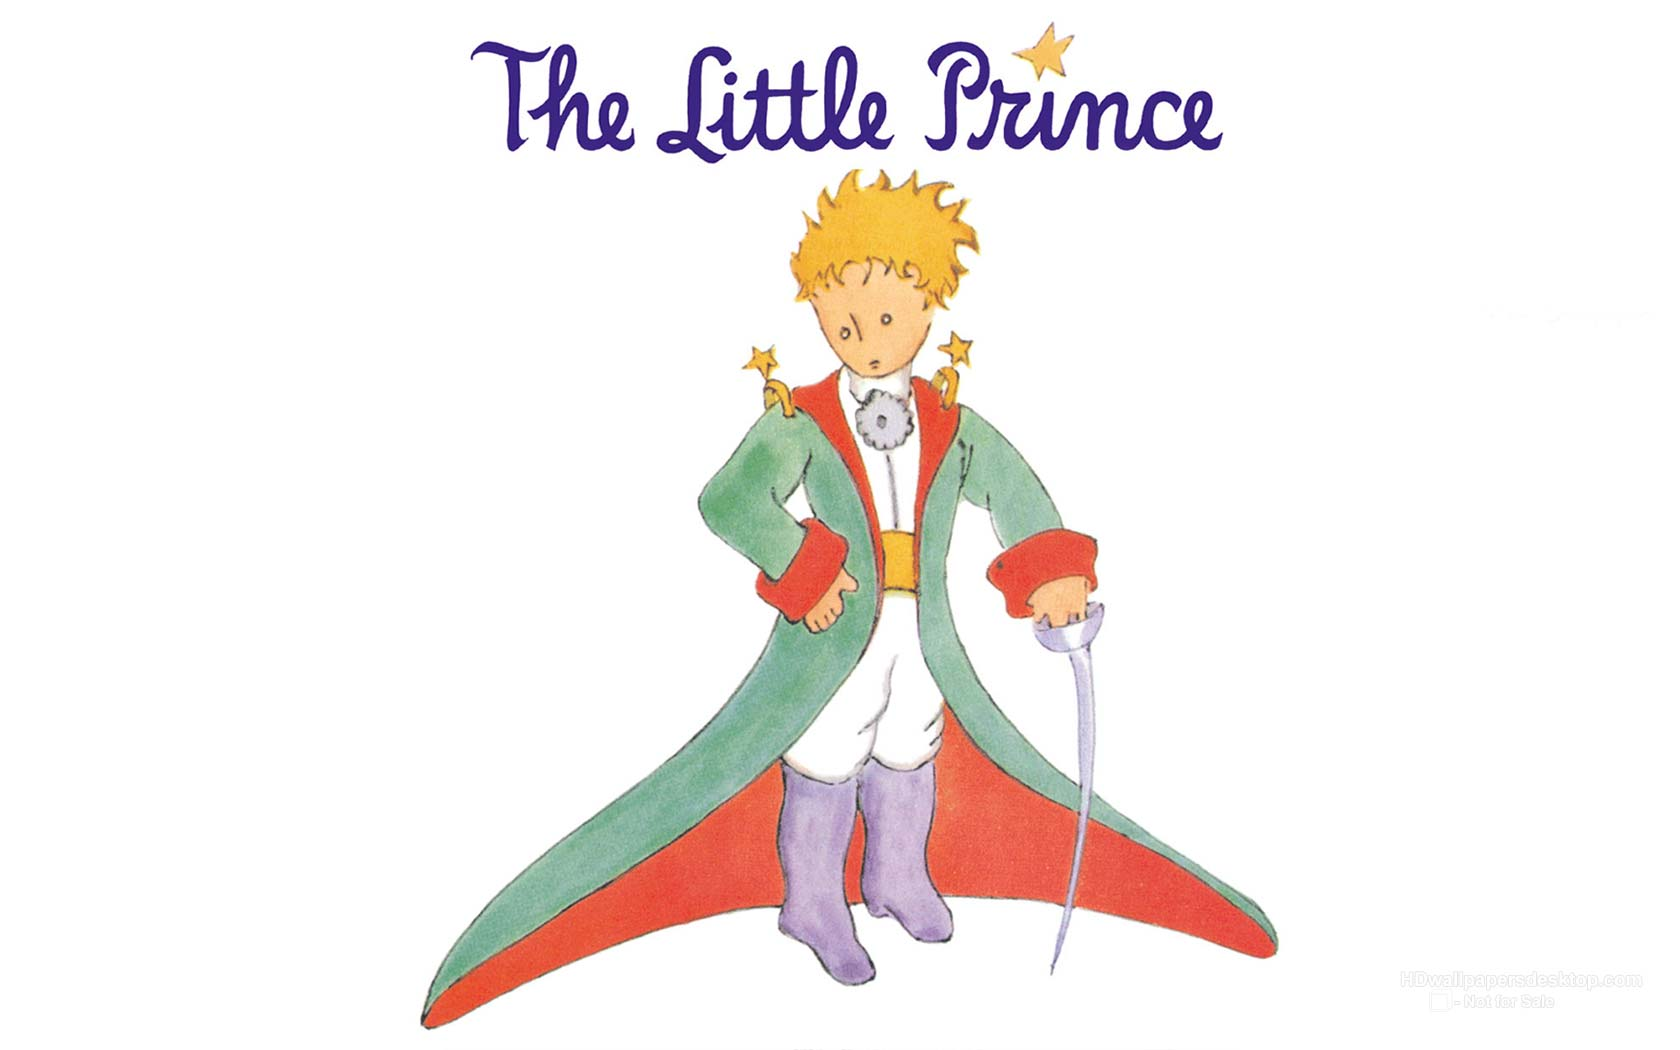 The Little Prince: [48+] The Little Prince Wallpaper On WallpaperSafari